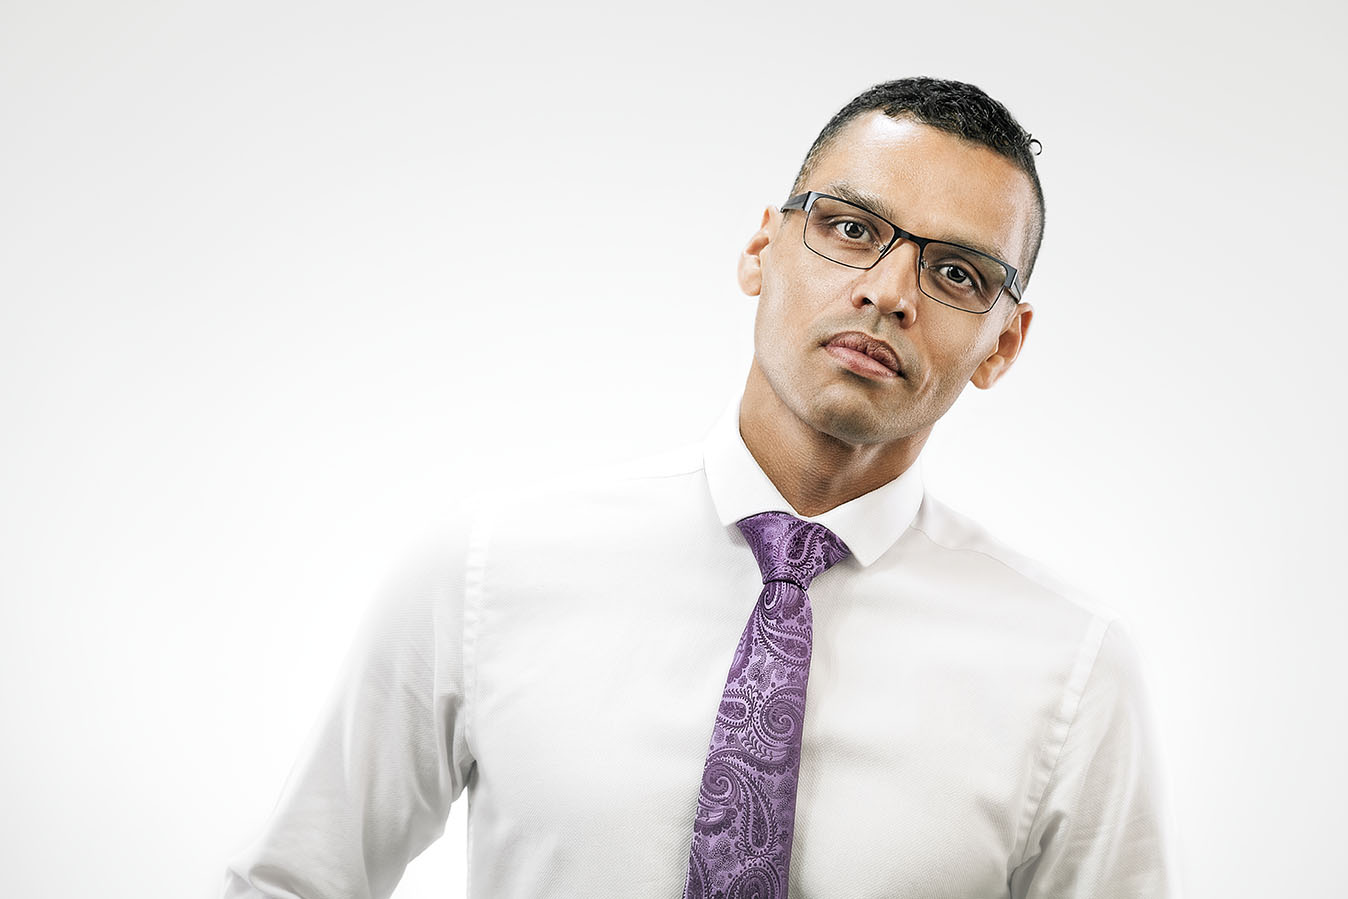 high key portrait of a black man wearing white shirt, glasses and purple tie after retouched